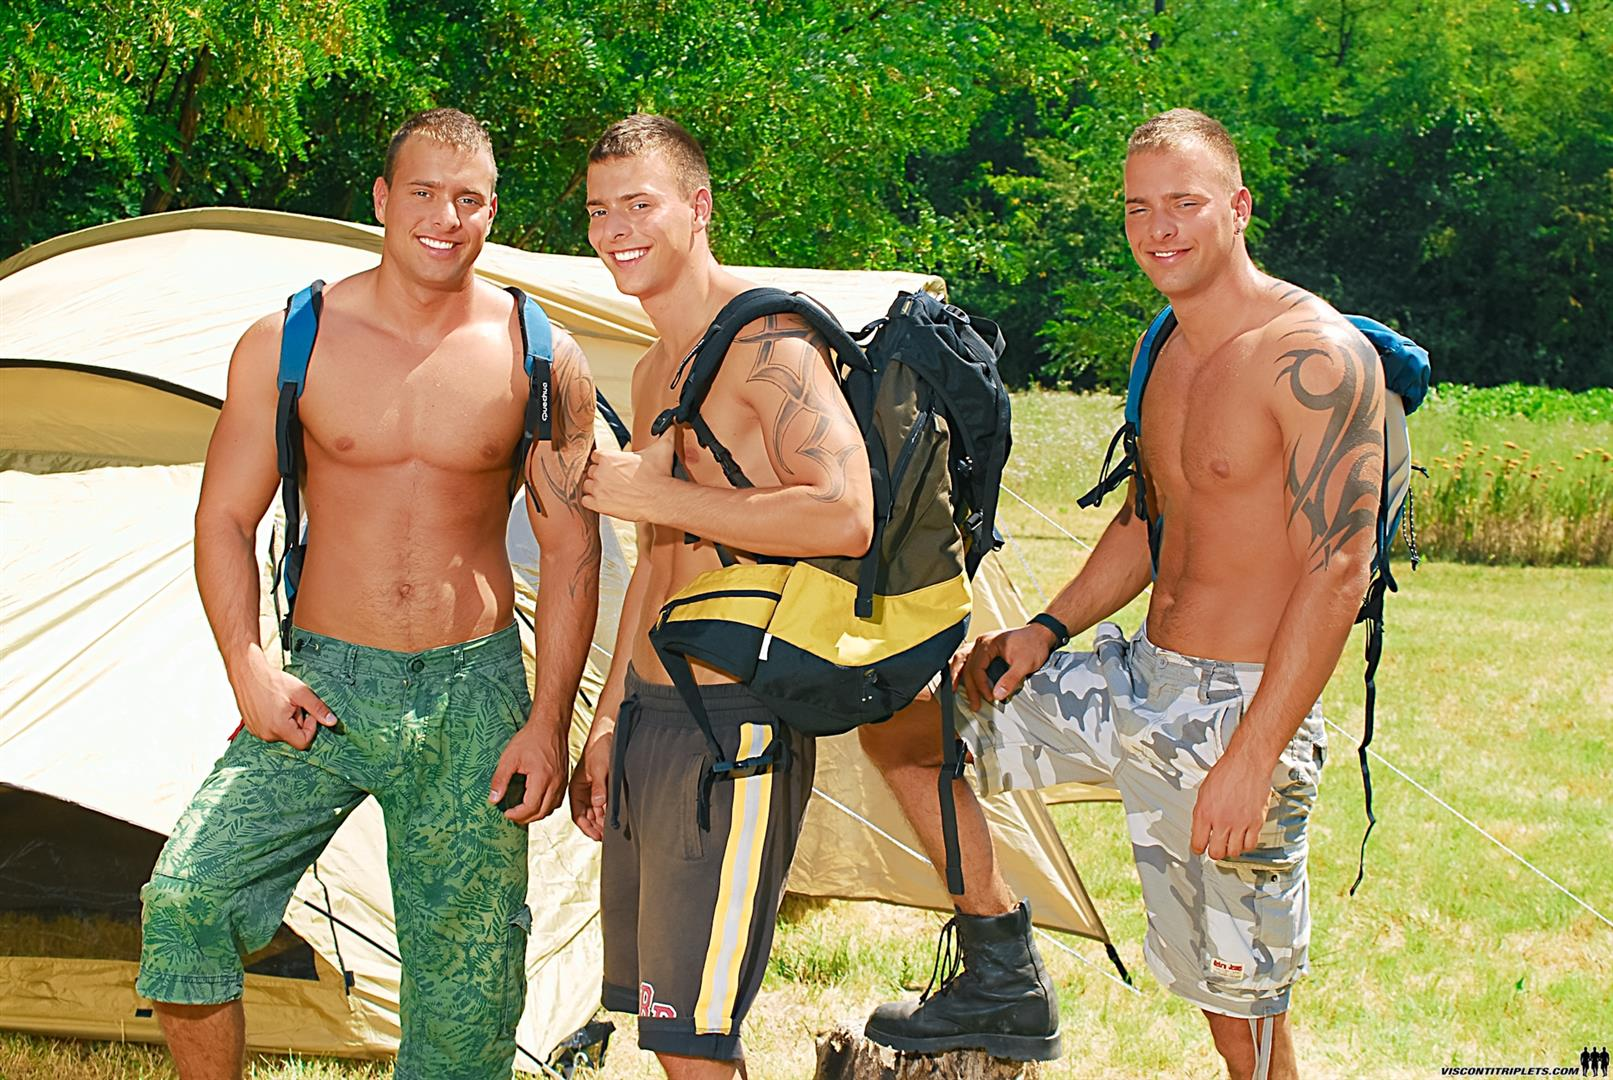 Visconti-Triplets-Jason-Visconti-Jimmy-Visconti-Joey-Visconti-Giuseppe-Pardi-Fucking-During-A-Camping-Trip-Amateur-Gay-Porn-01.jpg